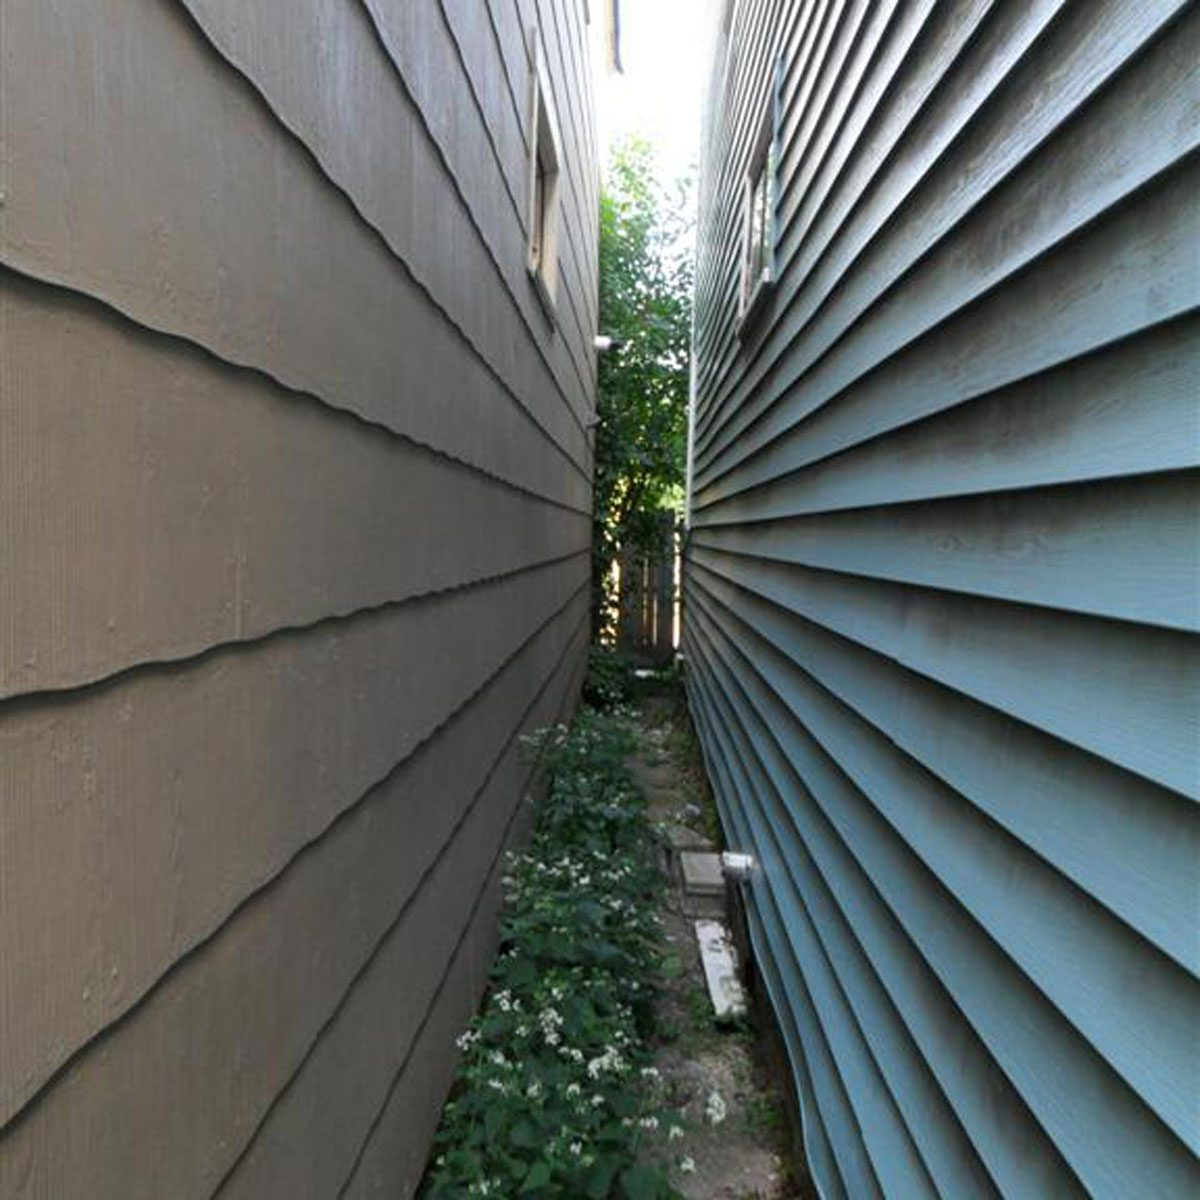 A fat siding guys nightmare